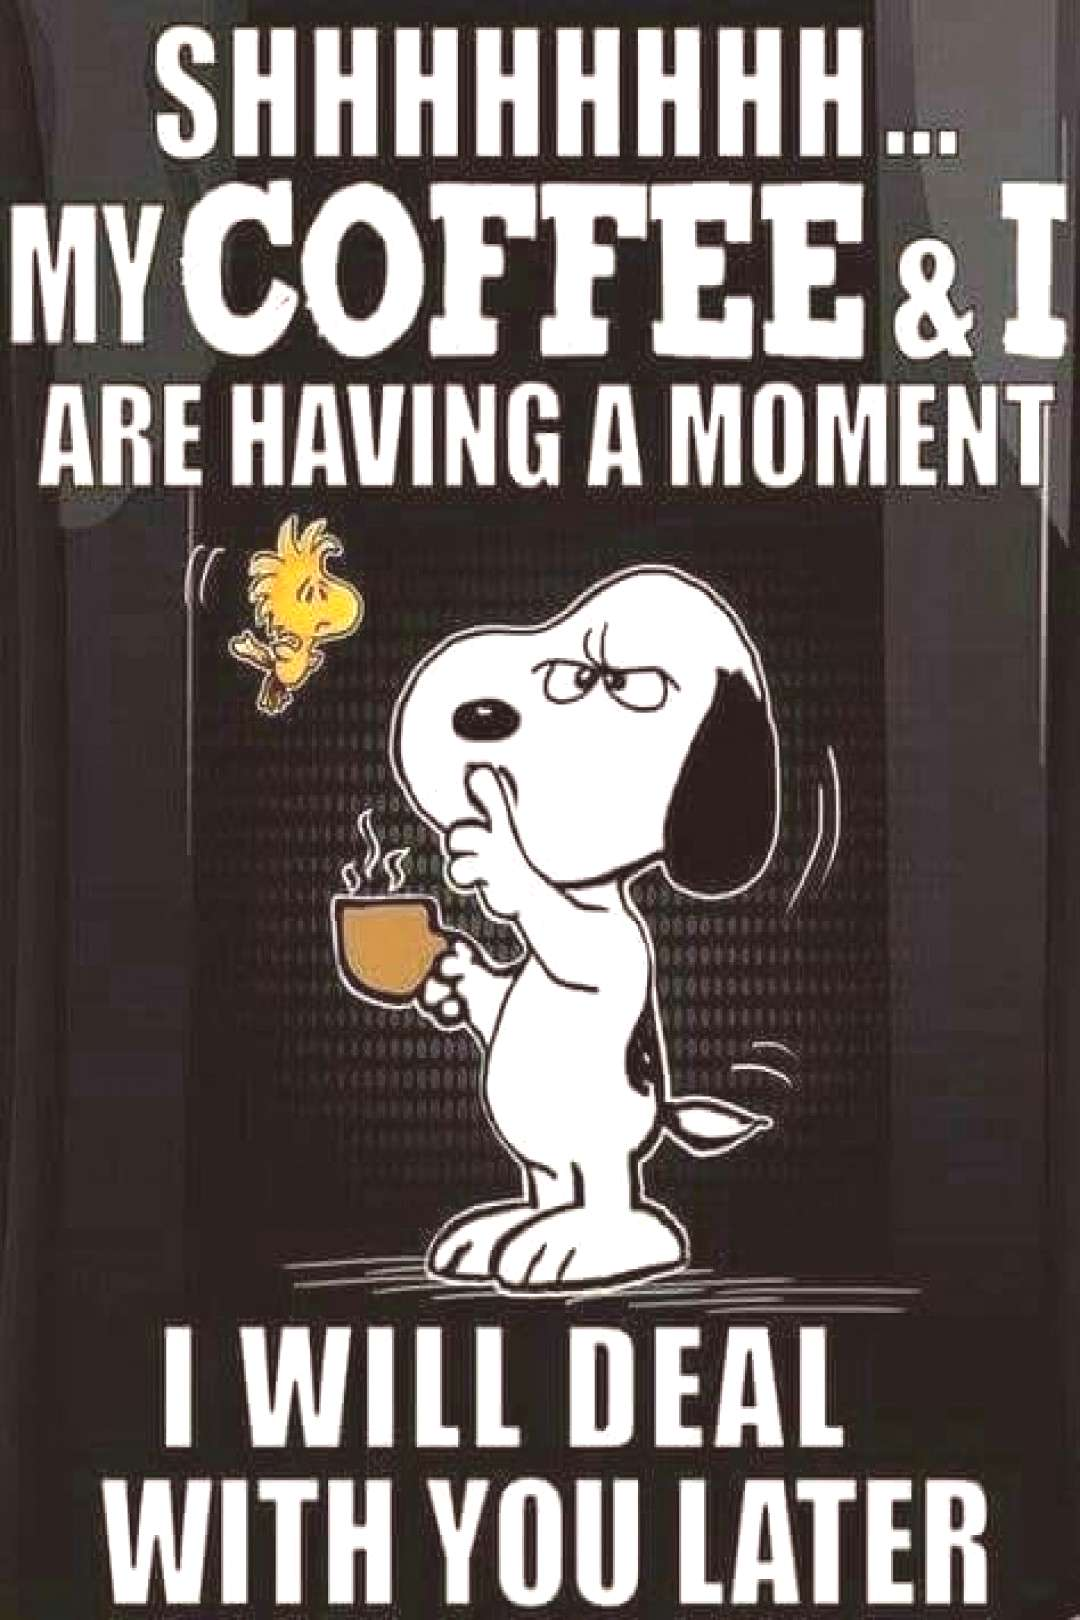 Shhh. My coffee and I are having a moment. I will deal with you later. — Snoopy